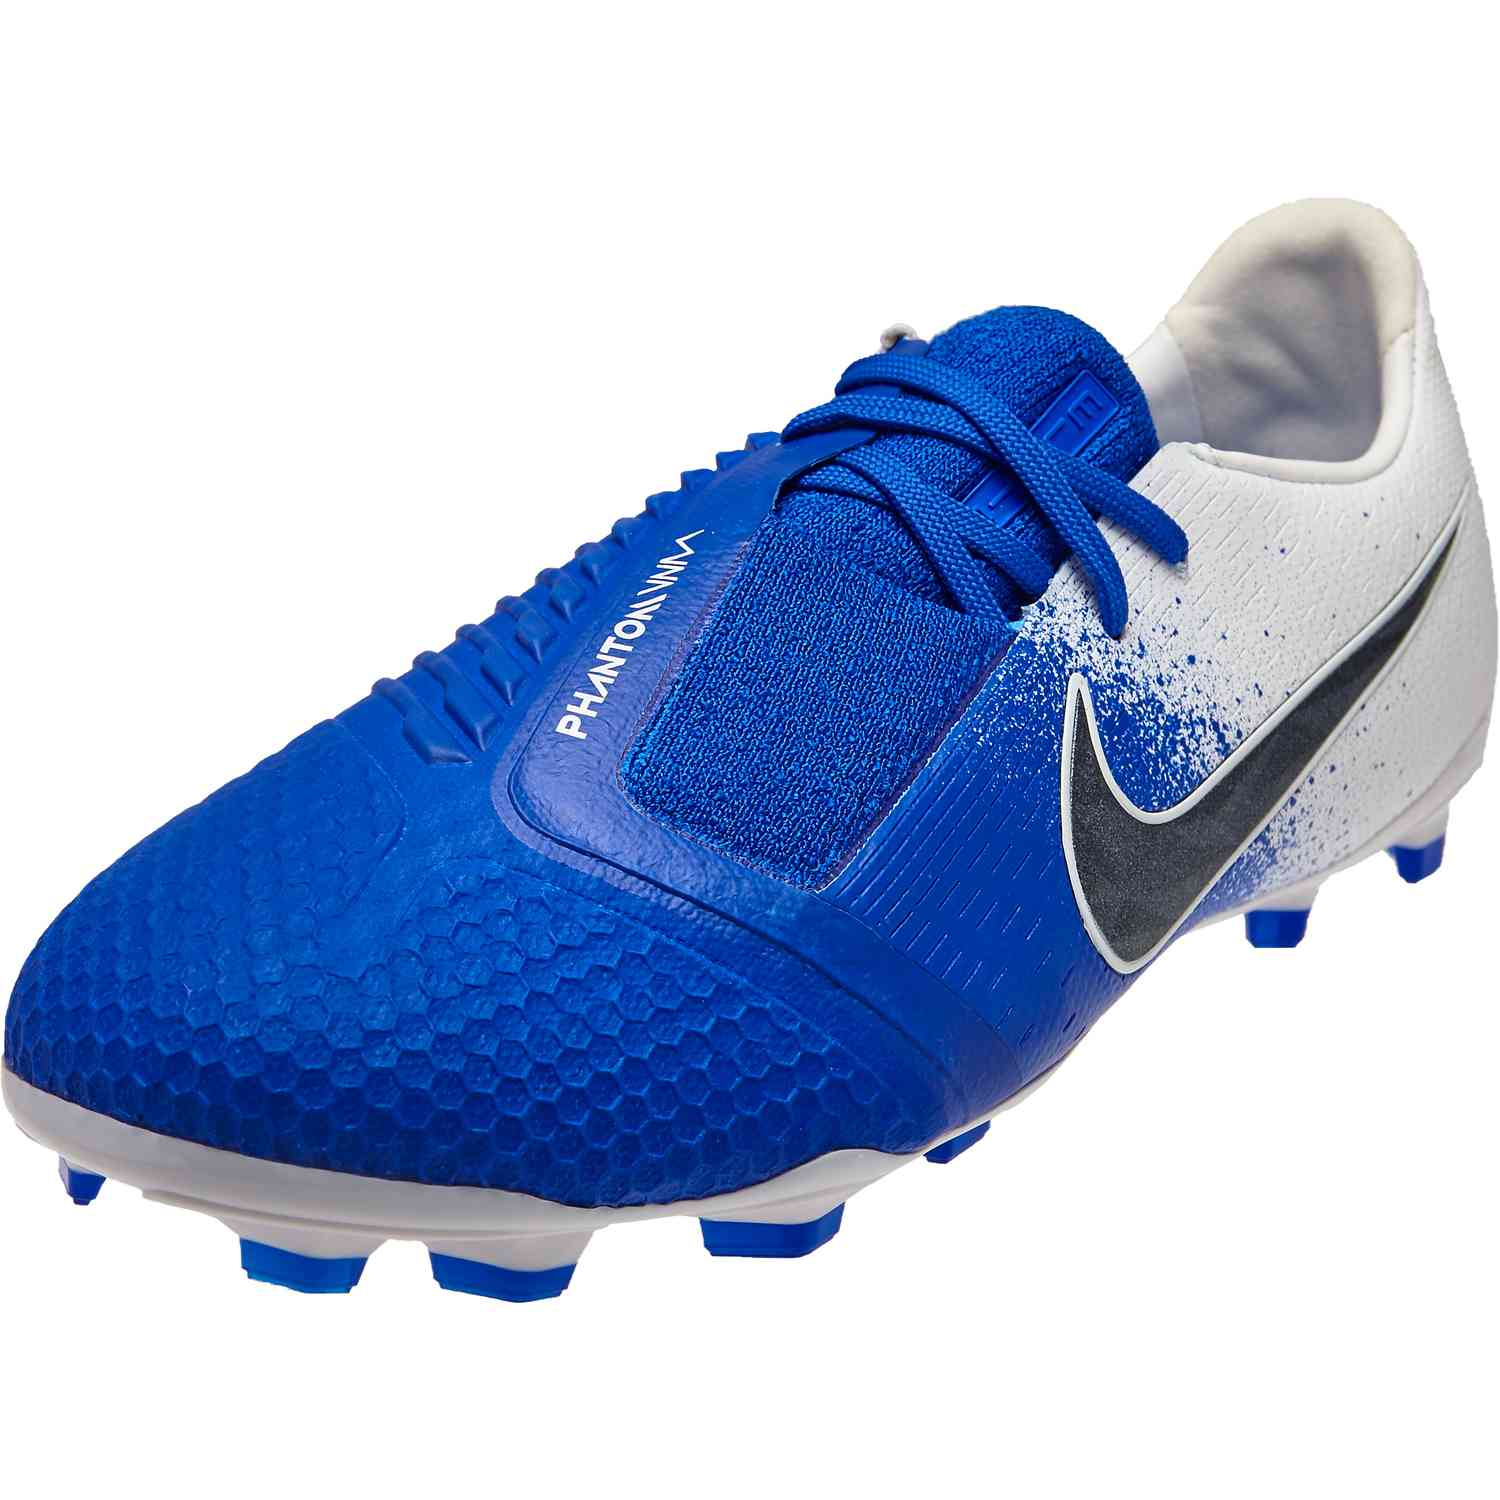 Kids Nike Phantom Venom Elite FG </p>                     </div> 		  <!--bof Product URL --> 										<!--eof Product URL --> 					<!--bof Quantity Discounts table --> 											<!--eof Quantity Discounts table --> 				</div> 				                       			</dd> 						<dt class=